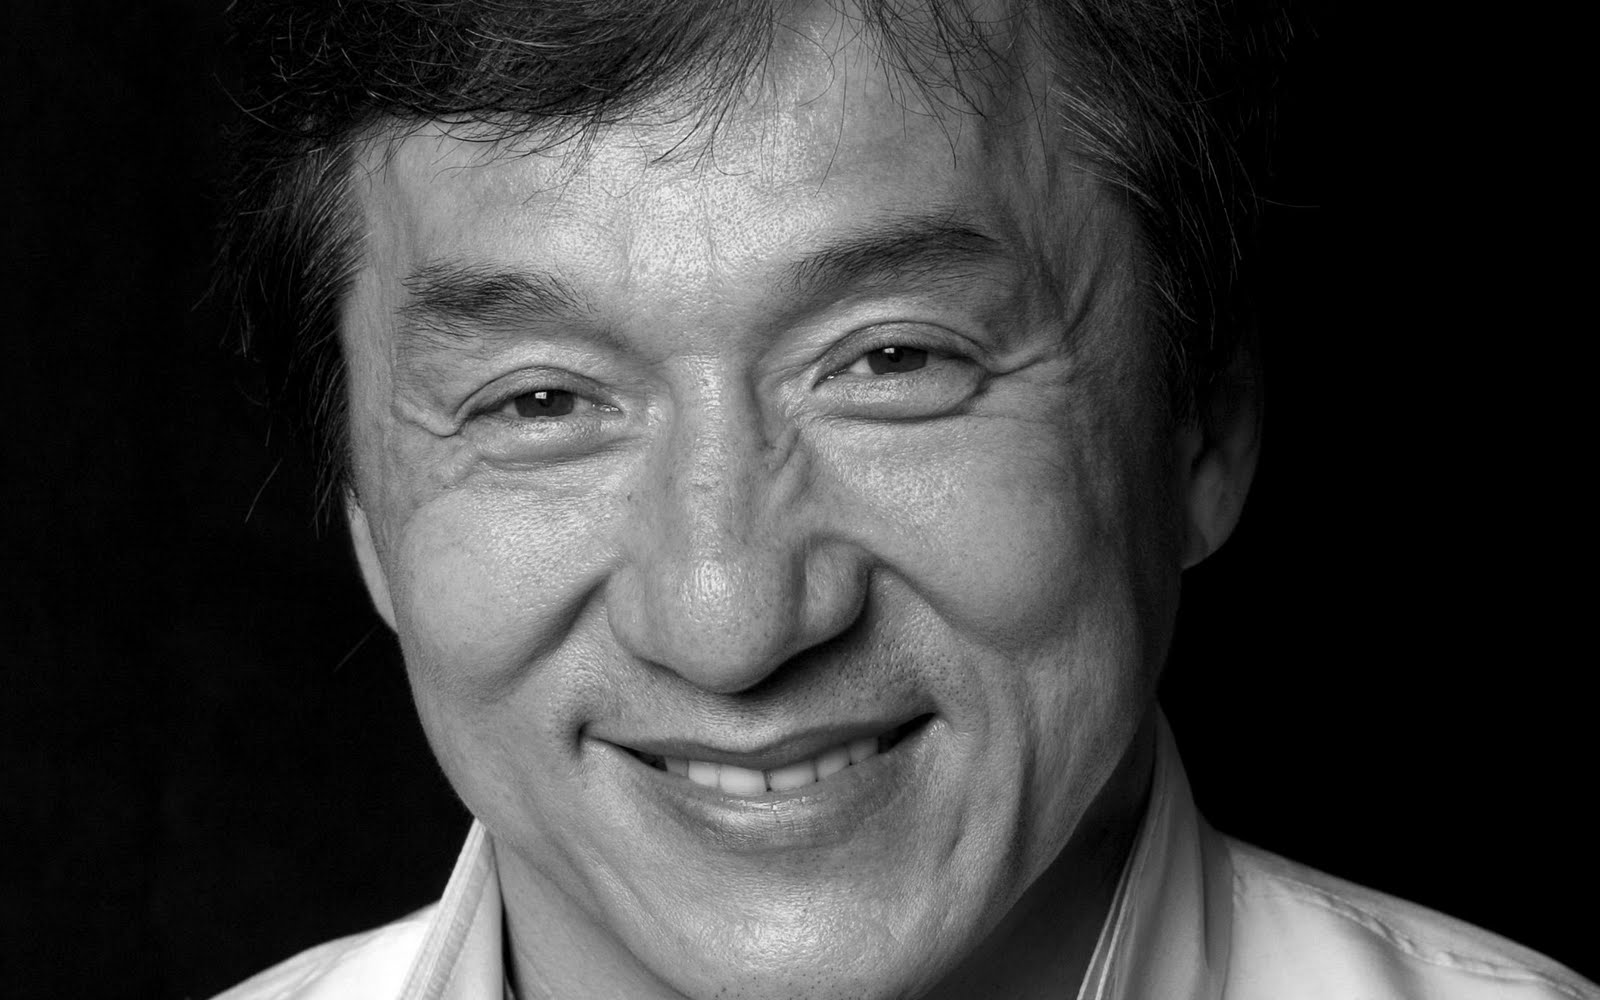 jackie chan Online shopping from a great selection at clothing, shoes & jewelry store.